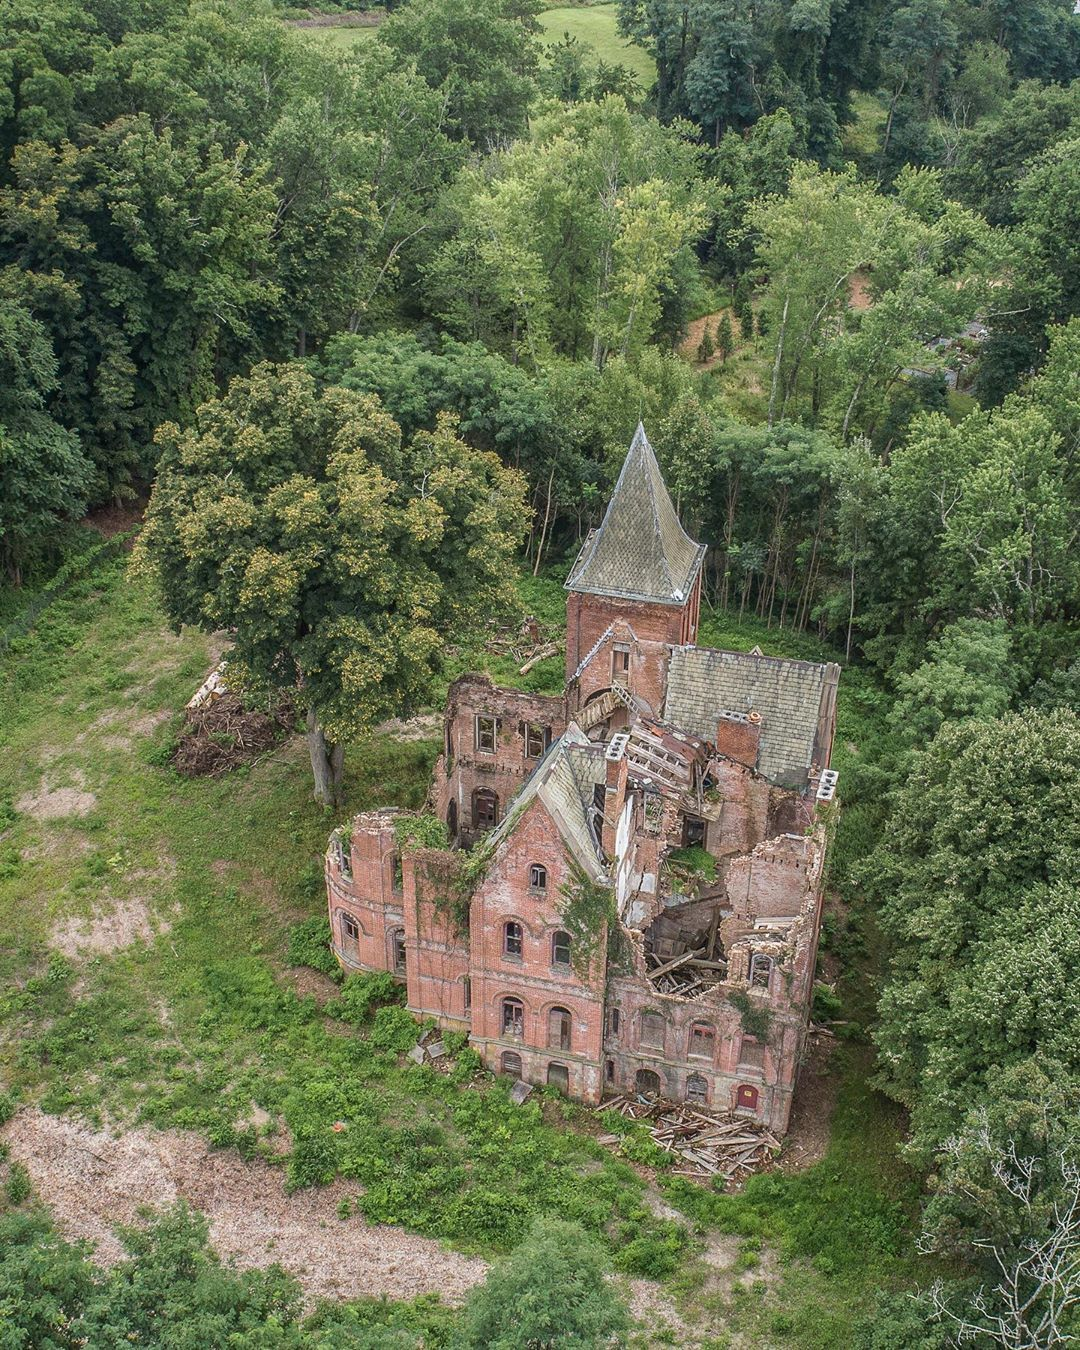 Abandoned Mansion In Rhinbeck, NY. Abandoned Mansion In